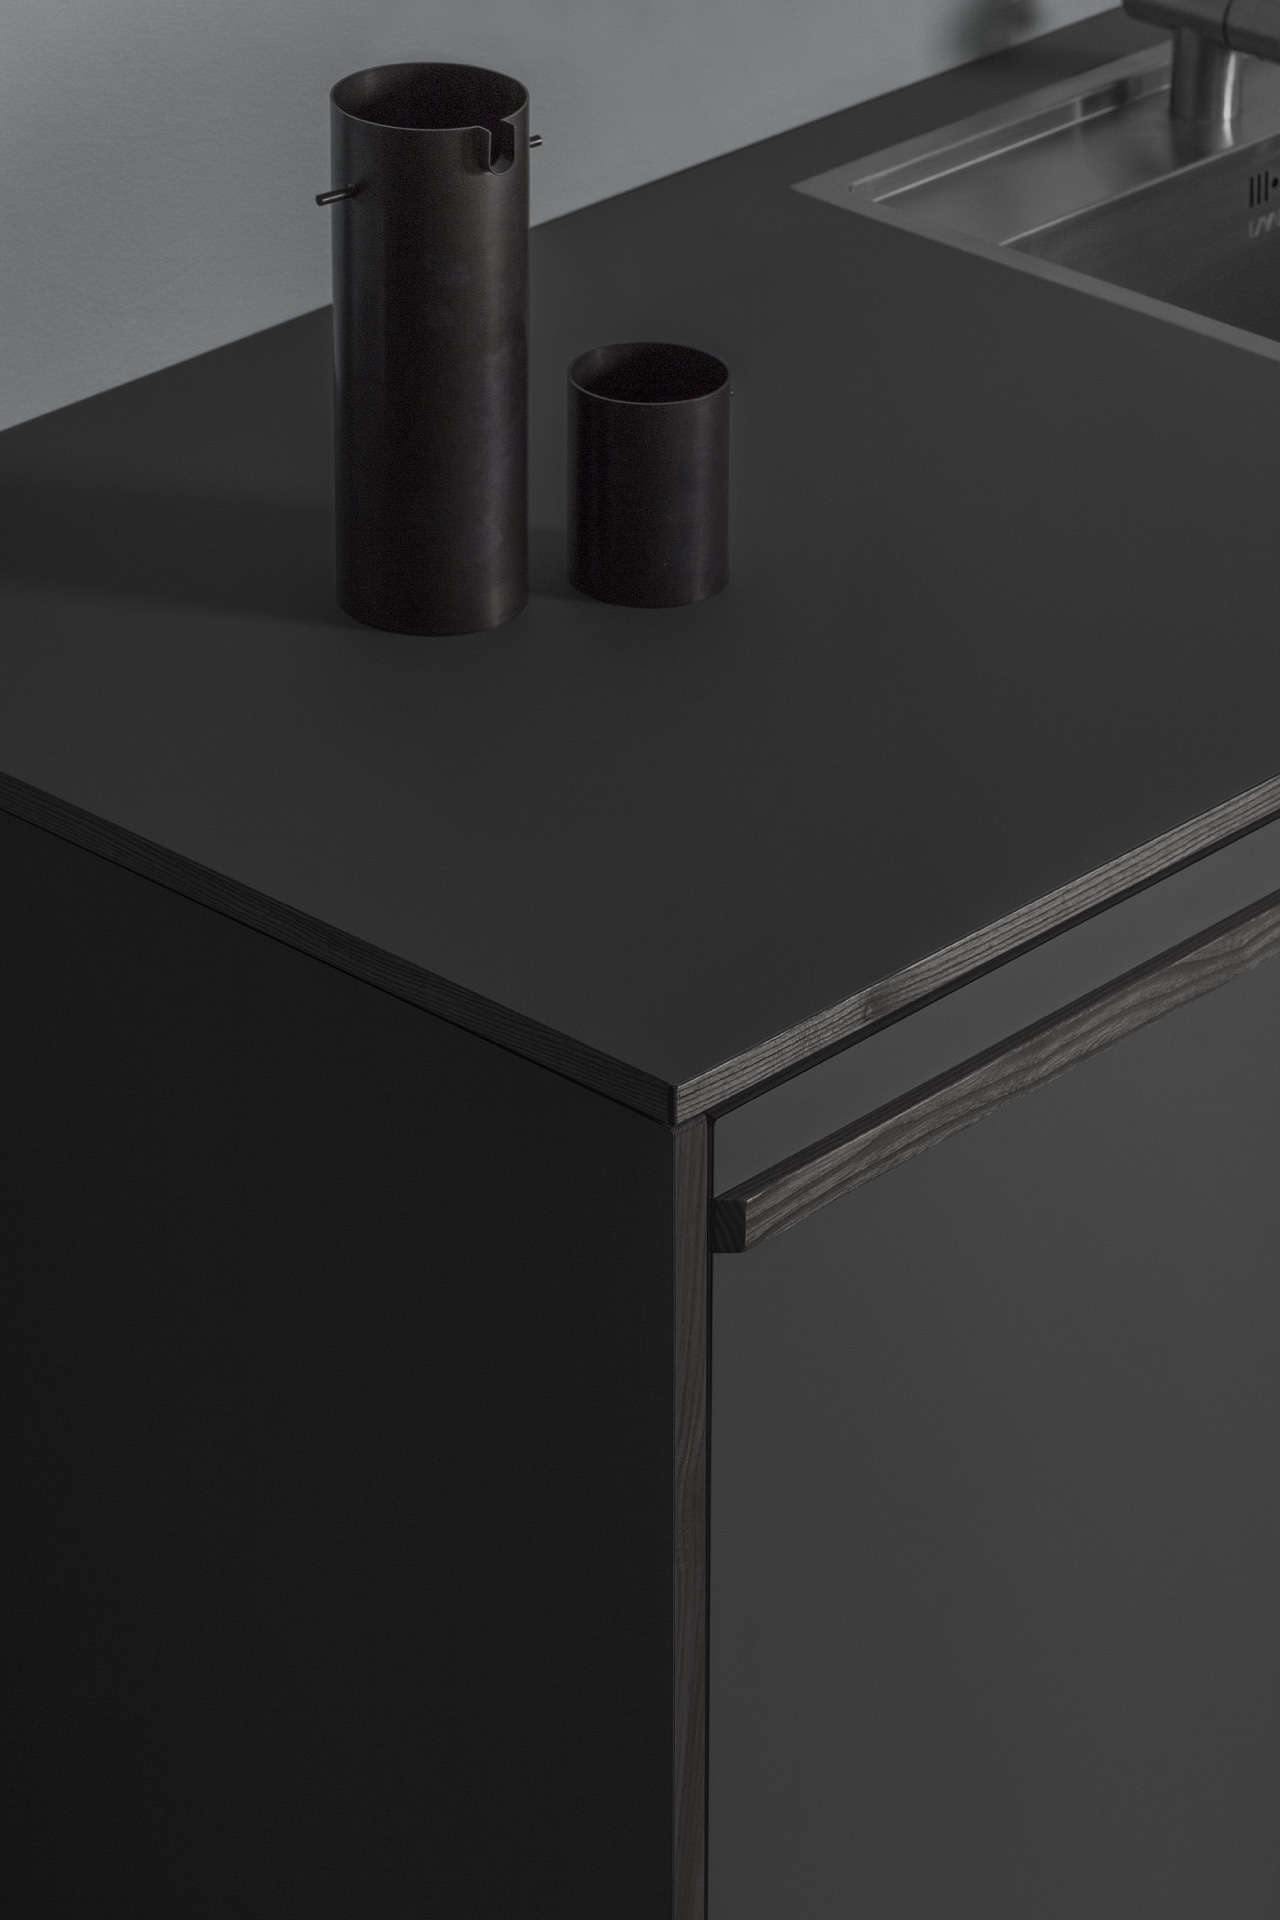 The Fronts Are Composed Of 3/4 Inch MDF With Veneered Ash On The